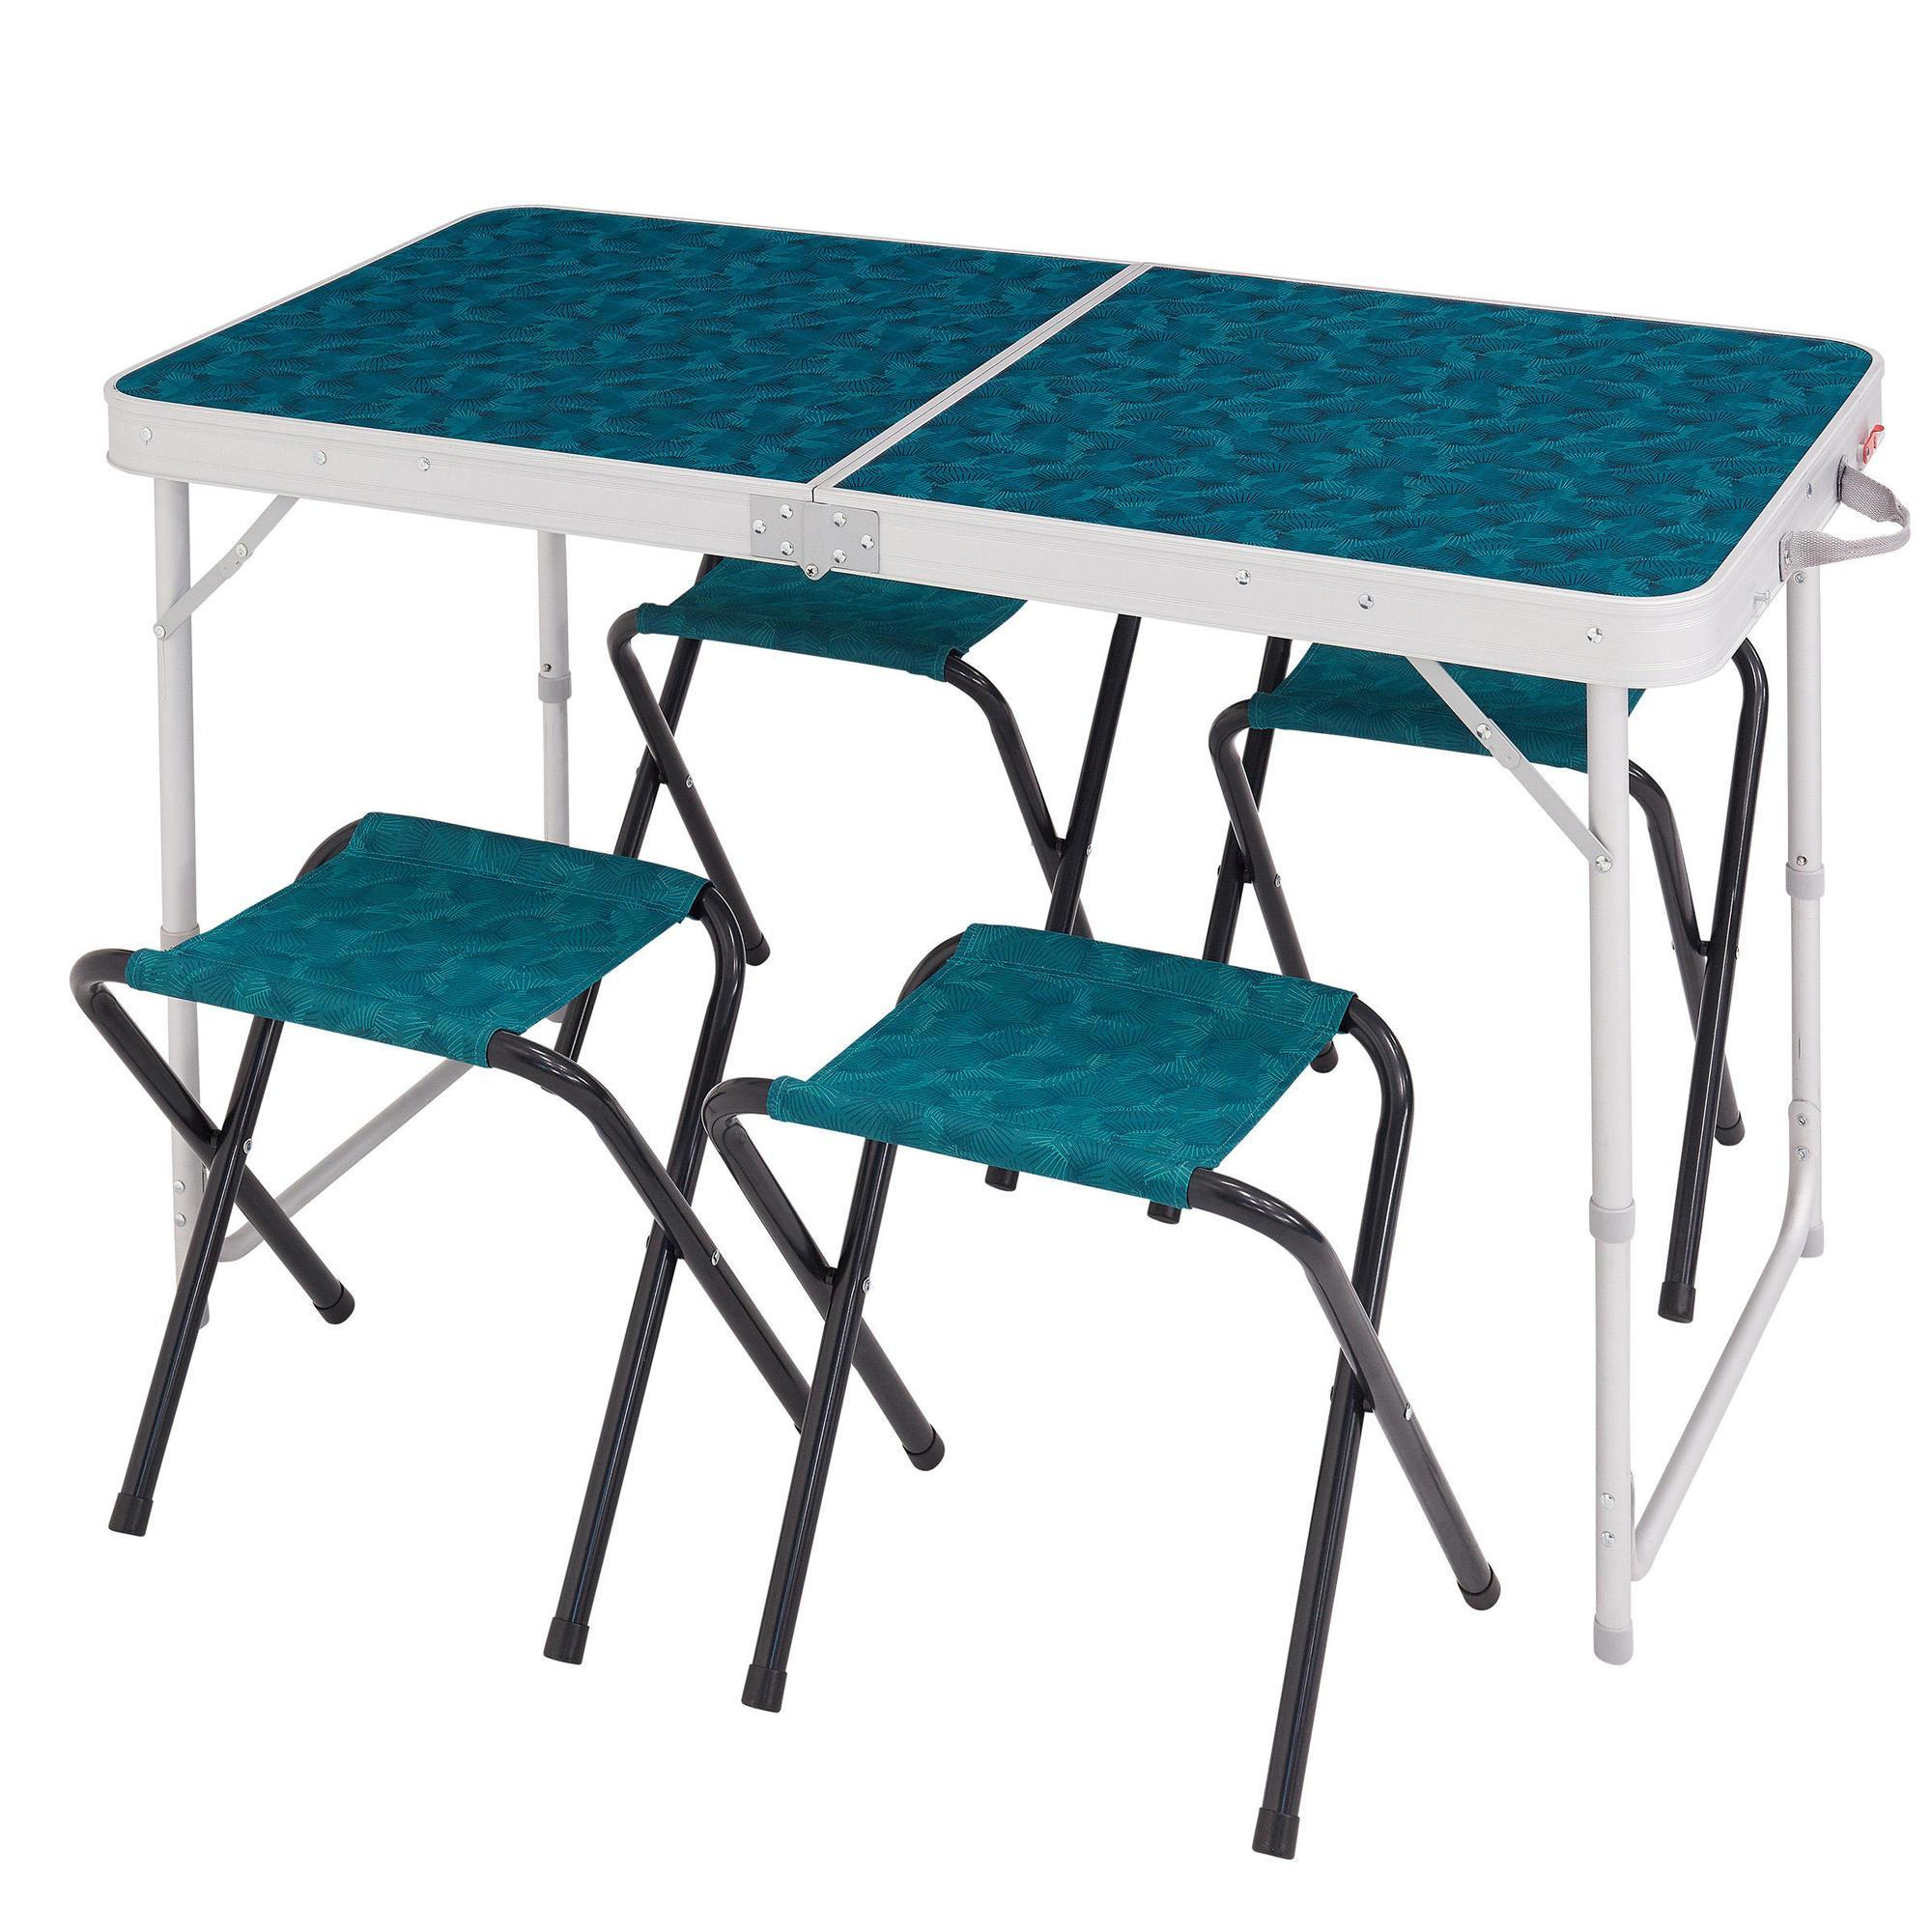 Decathlon Table Camping Pliable